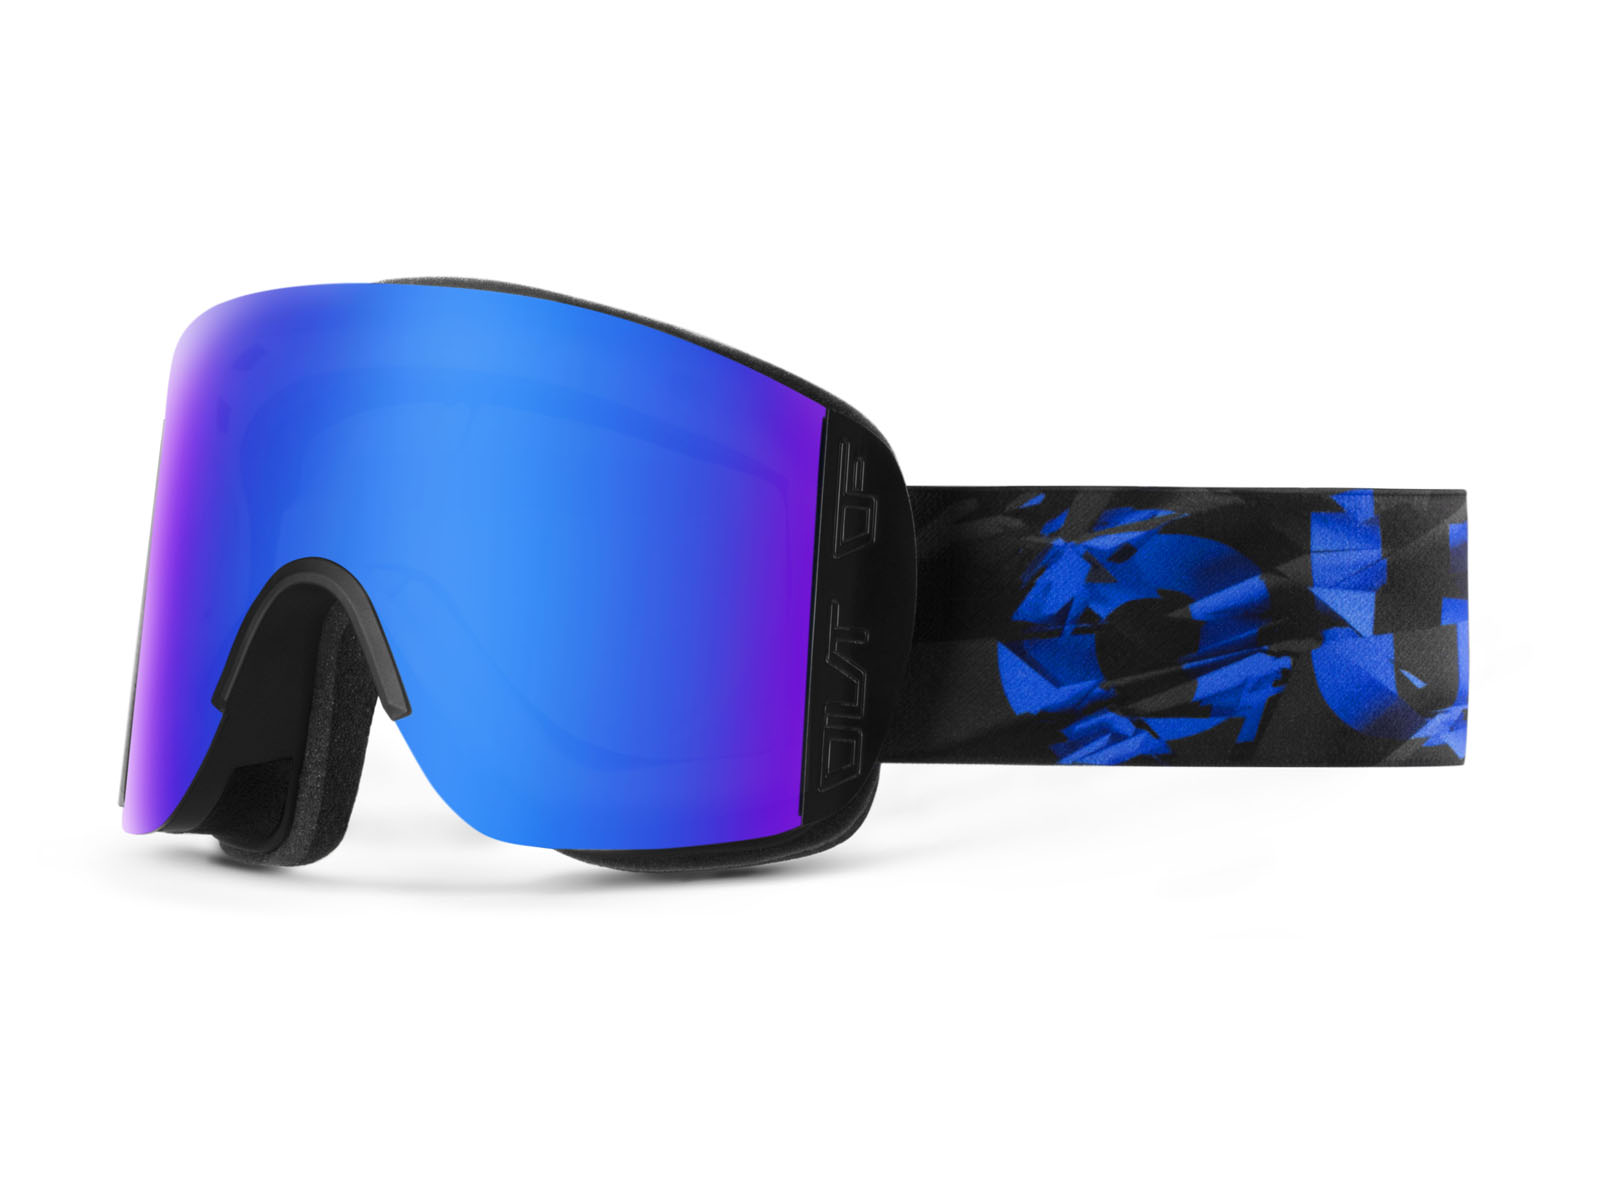 DOC ABYSS BLUE MCI GOGGLE